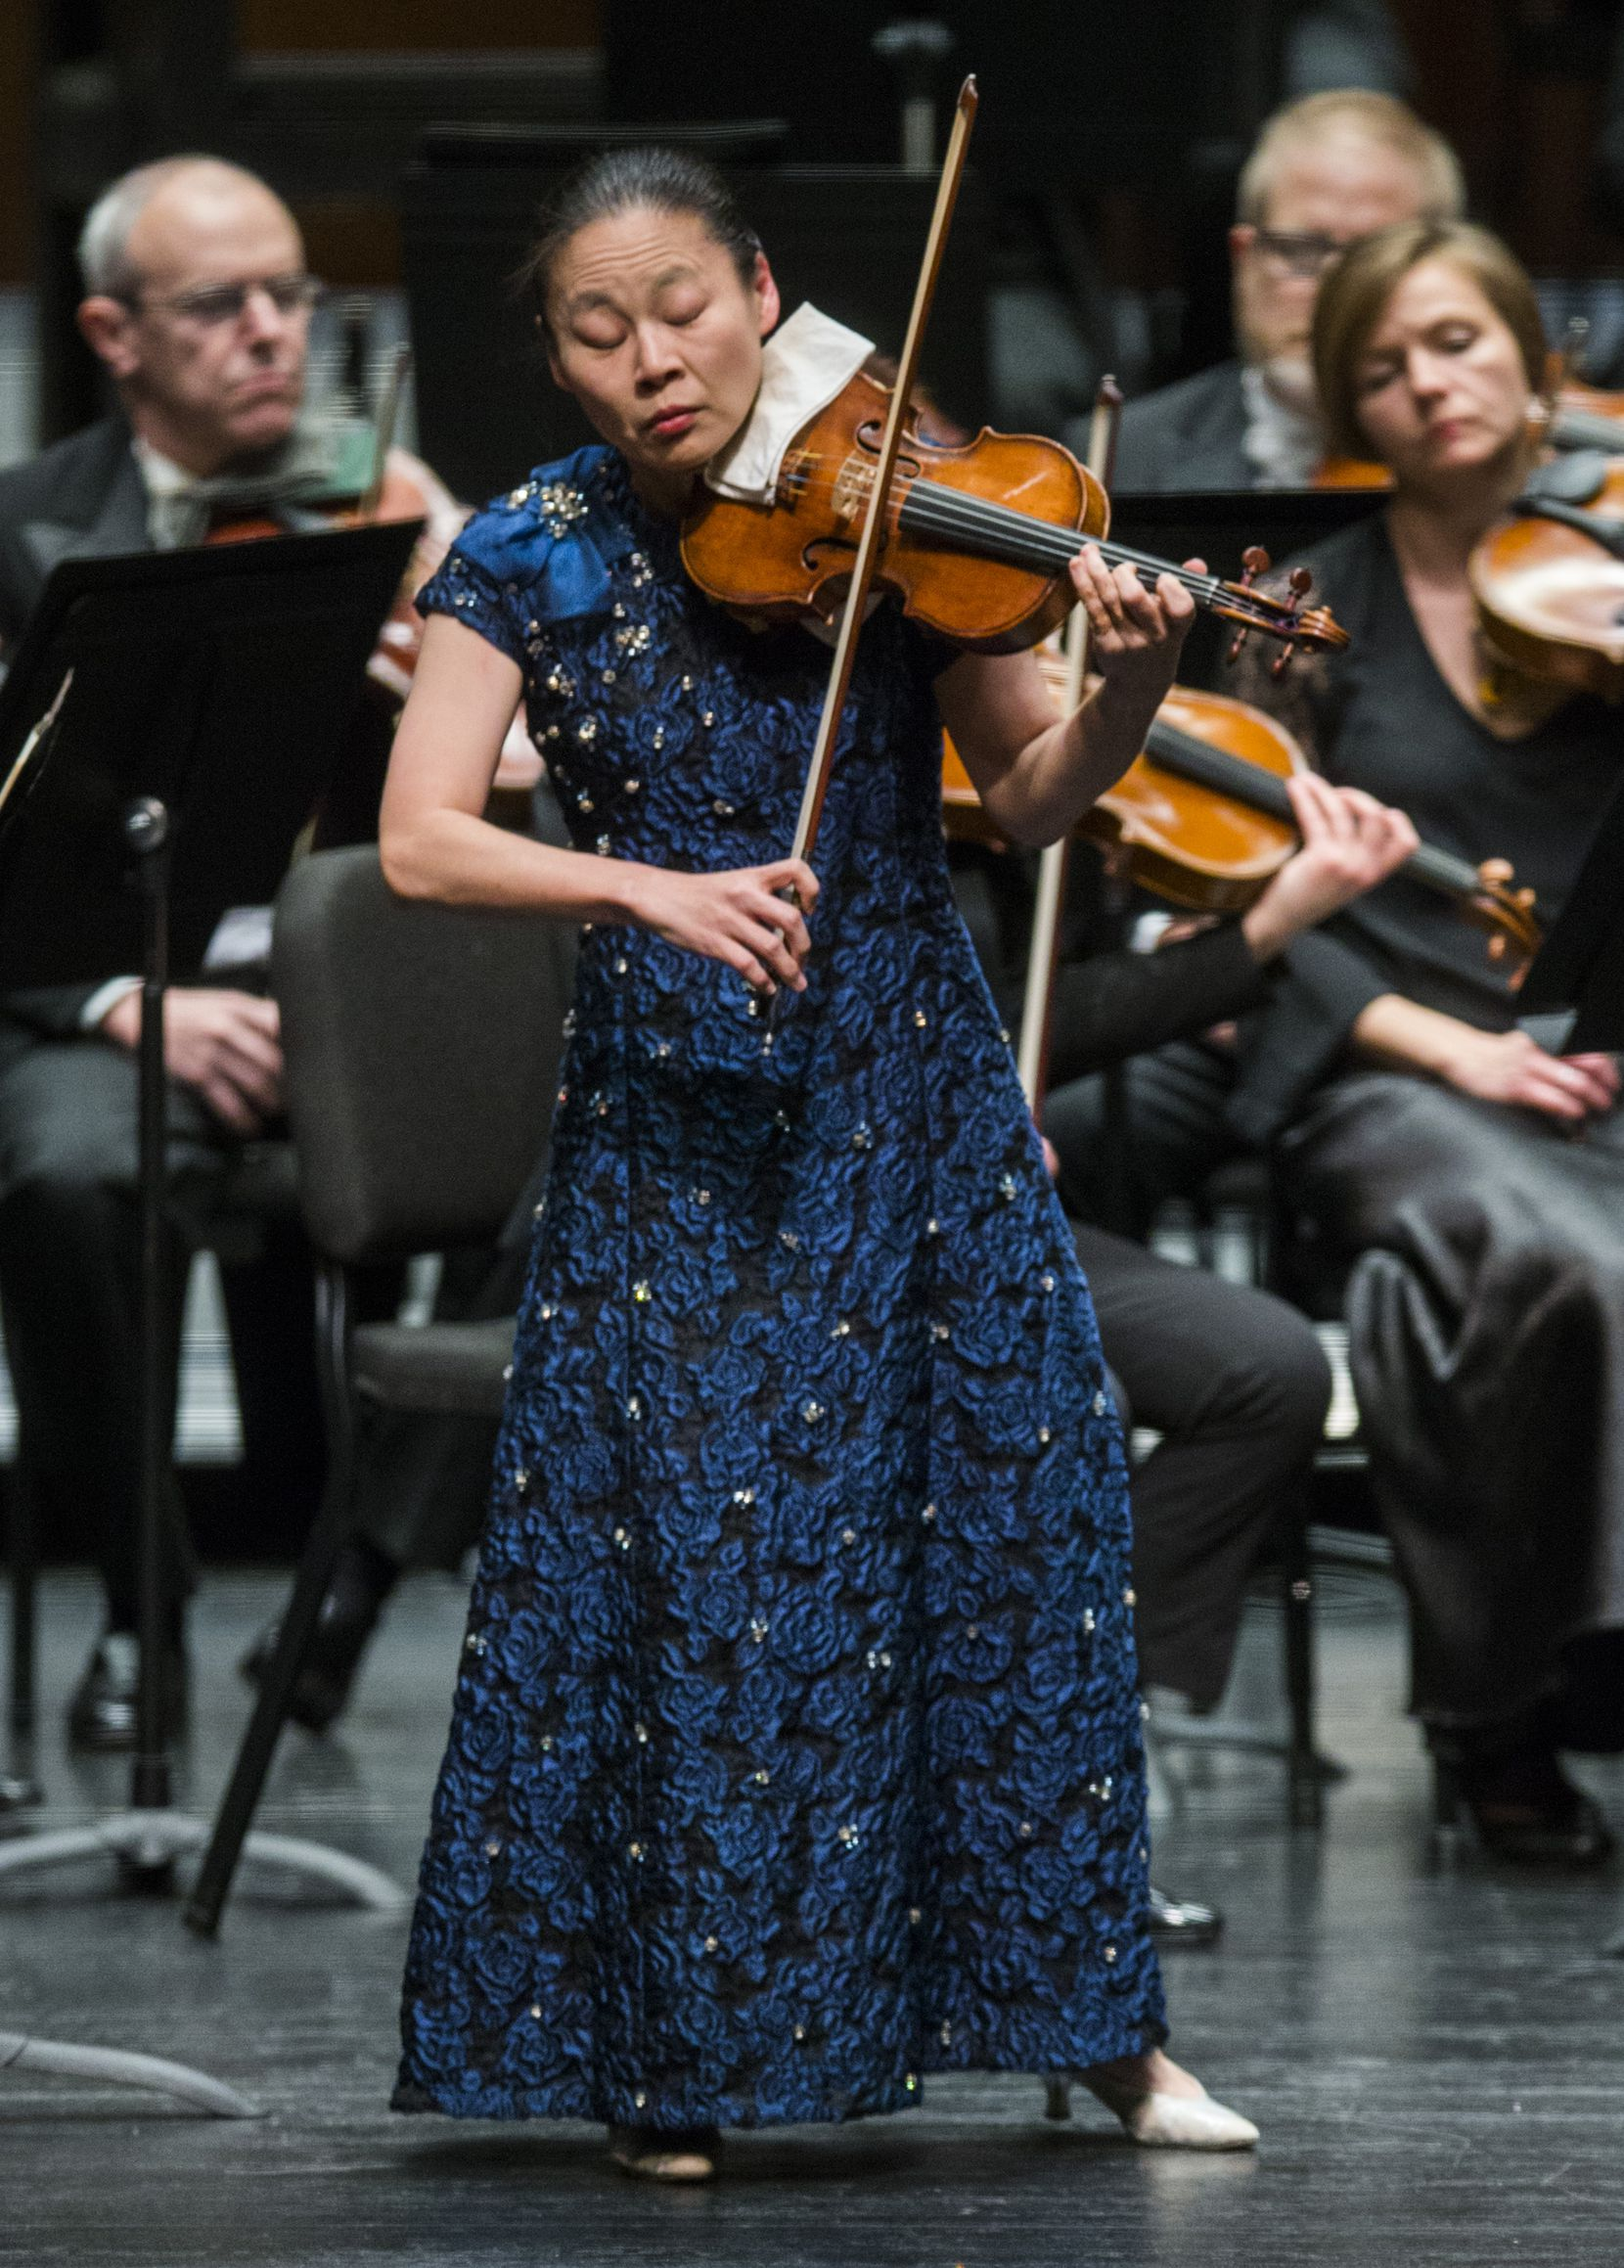 Violin soloist Midori performs with the Fort Worth Symphony Orchestra during the Gala concert, conducted by music director Miguel Harth-Bedoya on Saturday, February 8, 2020, at Bass Performance Hall in Fort Worth.